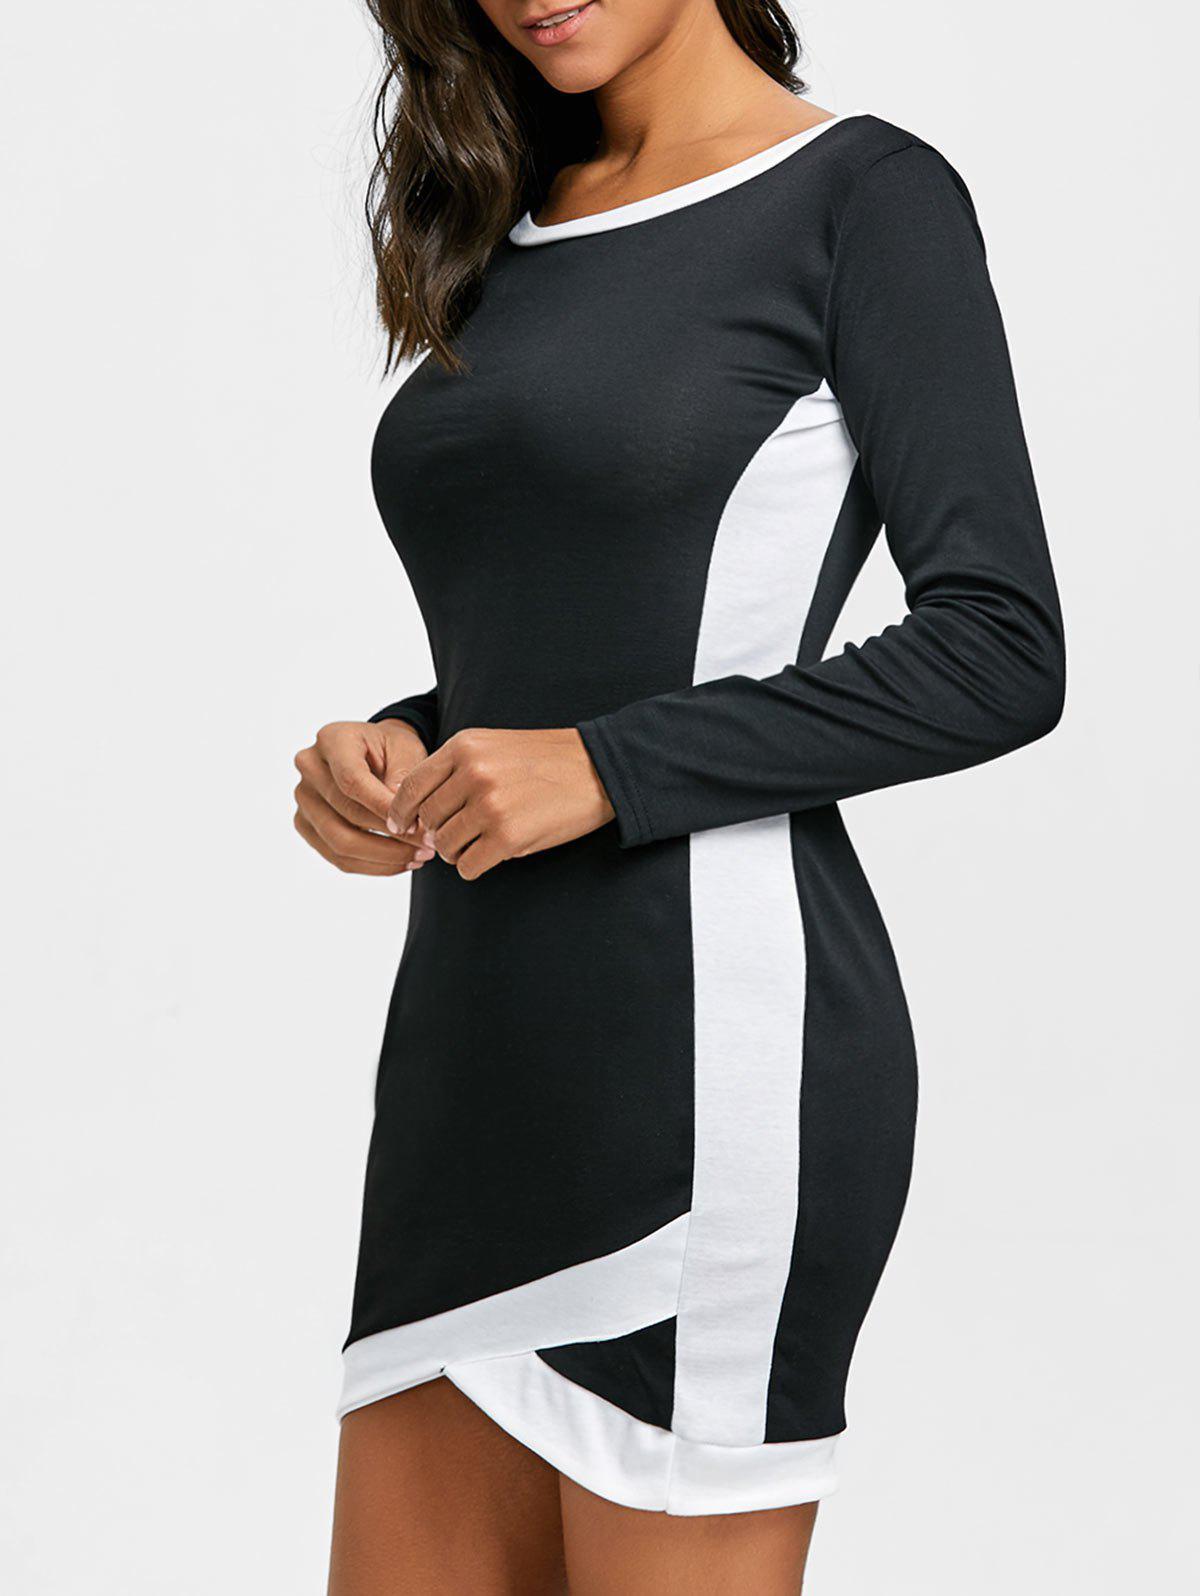 Two Tone Long Sleeve Bodycon Mini Dress - WHITE/BLACK M